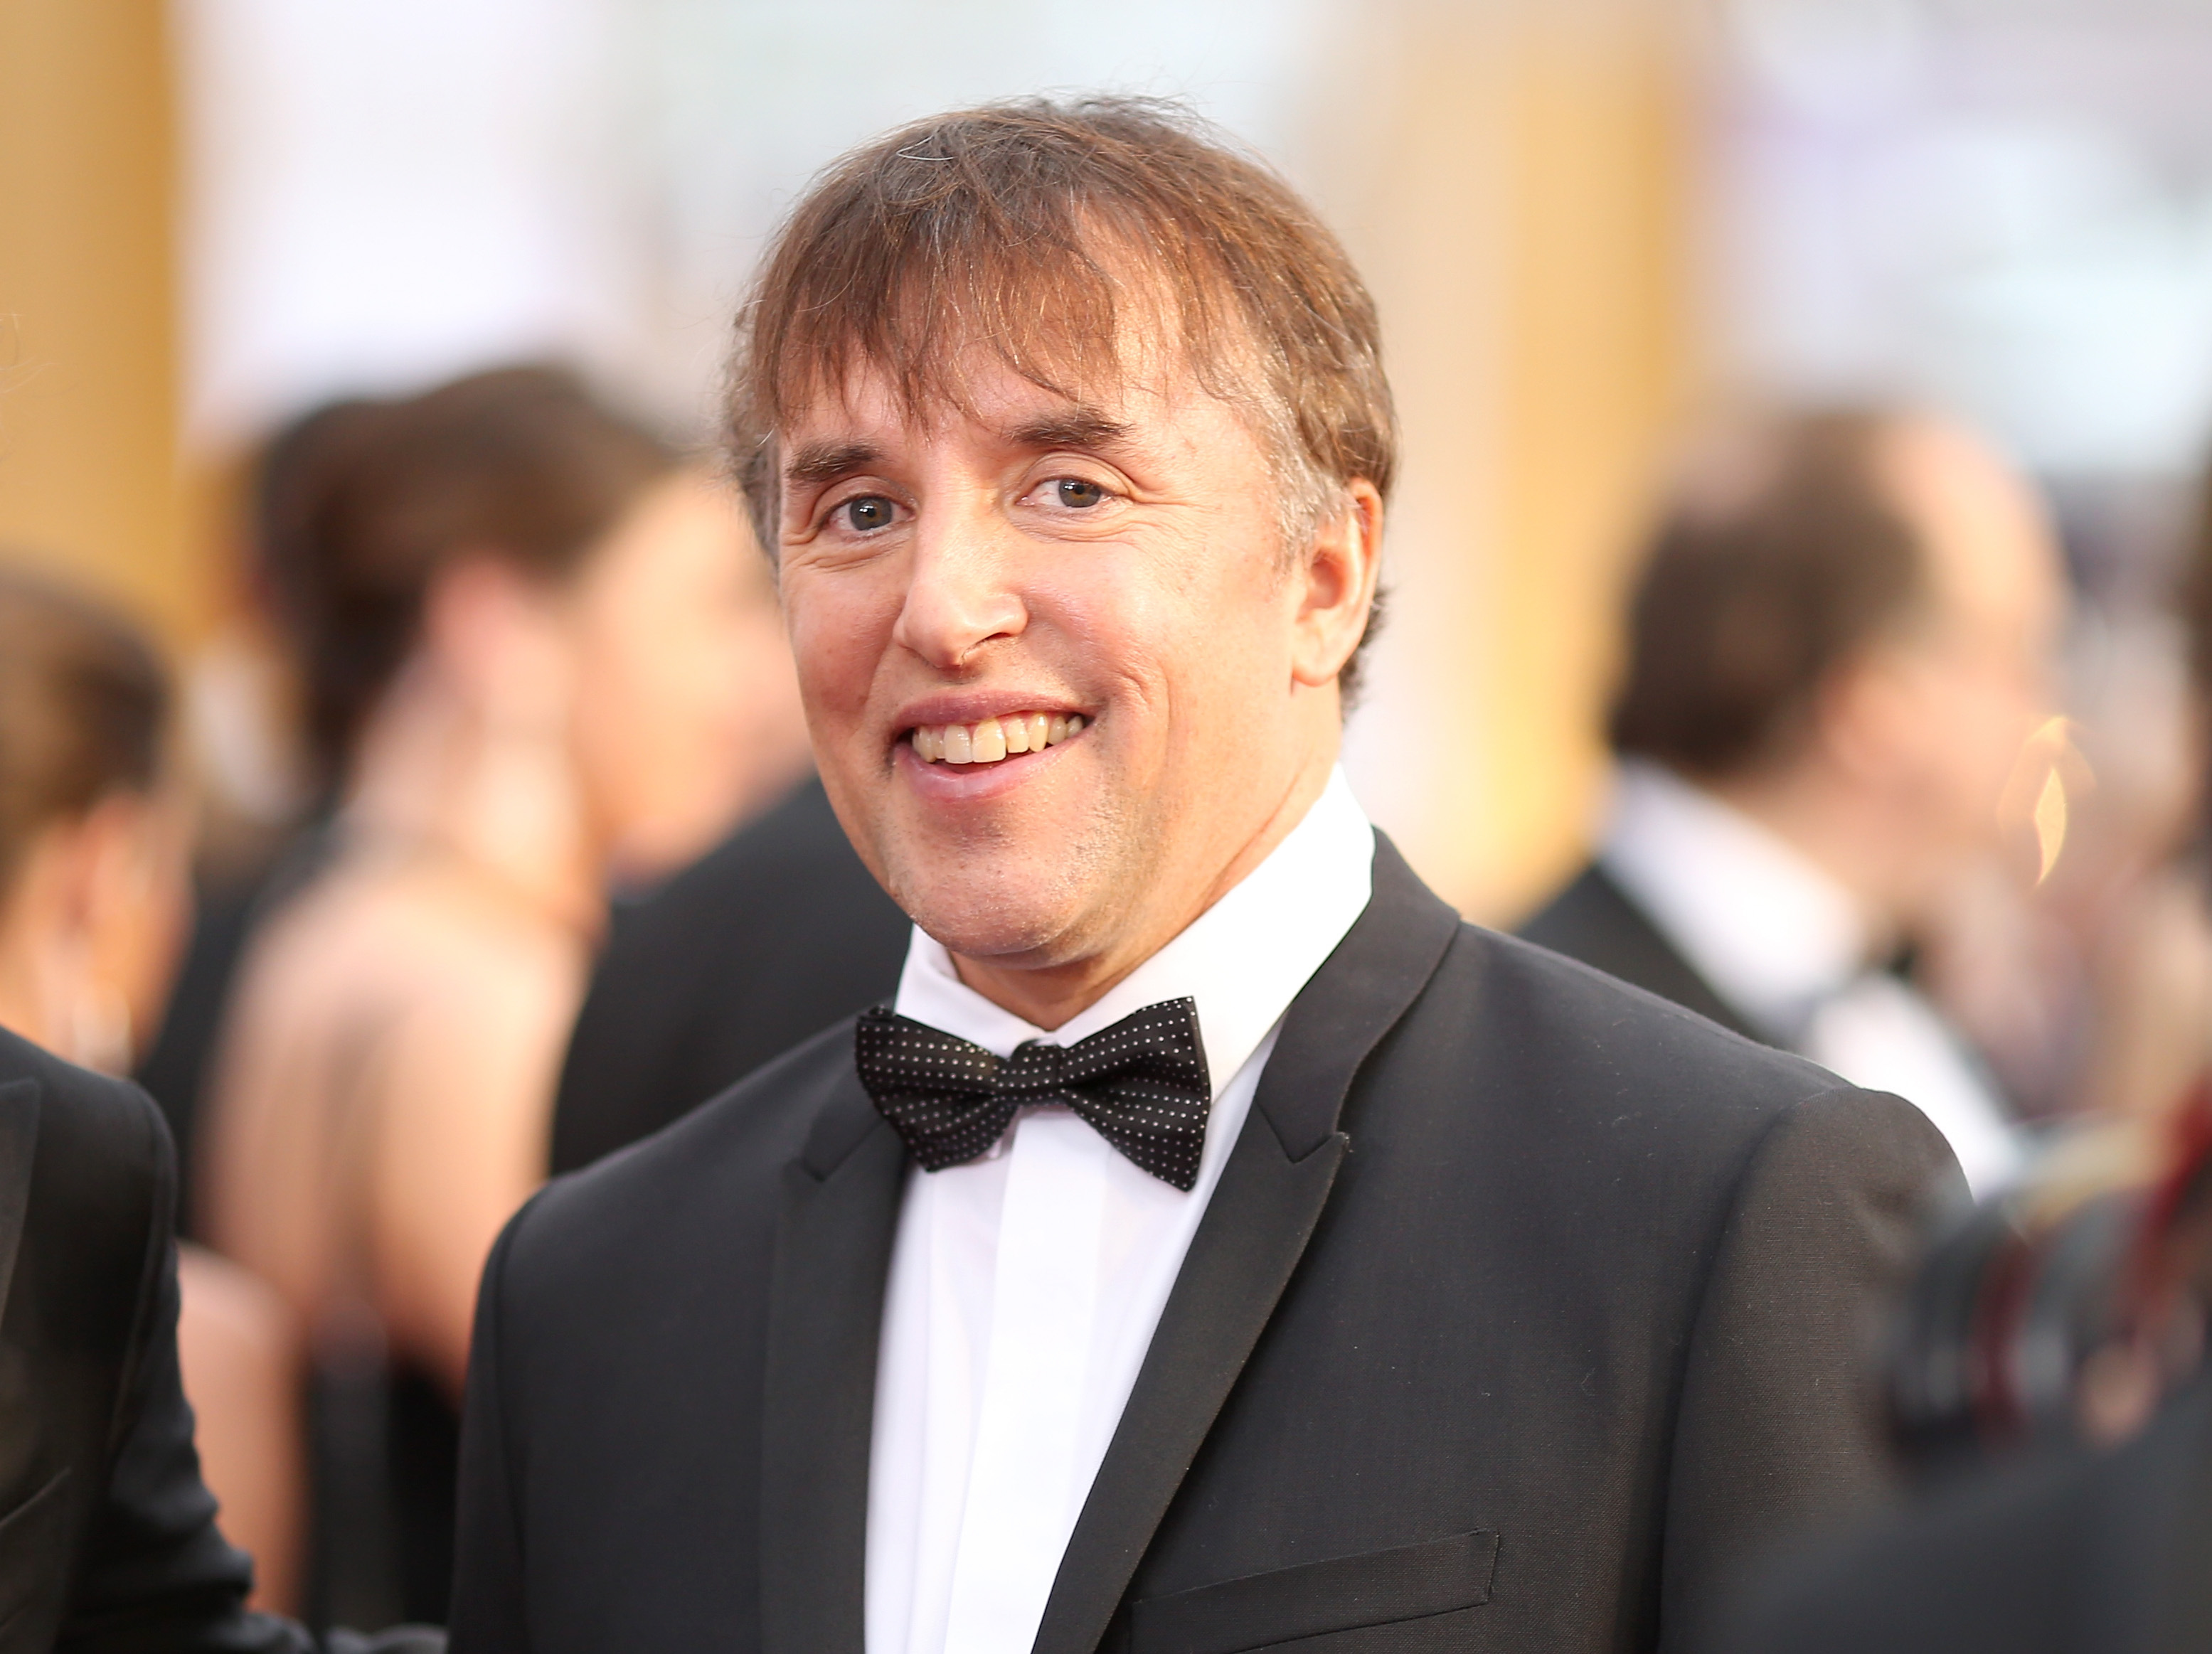 HOLLYWOOD, CA - FEBRUARY 22: Director Richard Linklater attends the 87th Annual Academy Awards at Hollywood & Highland Ce